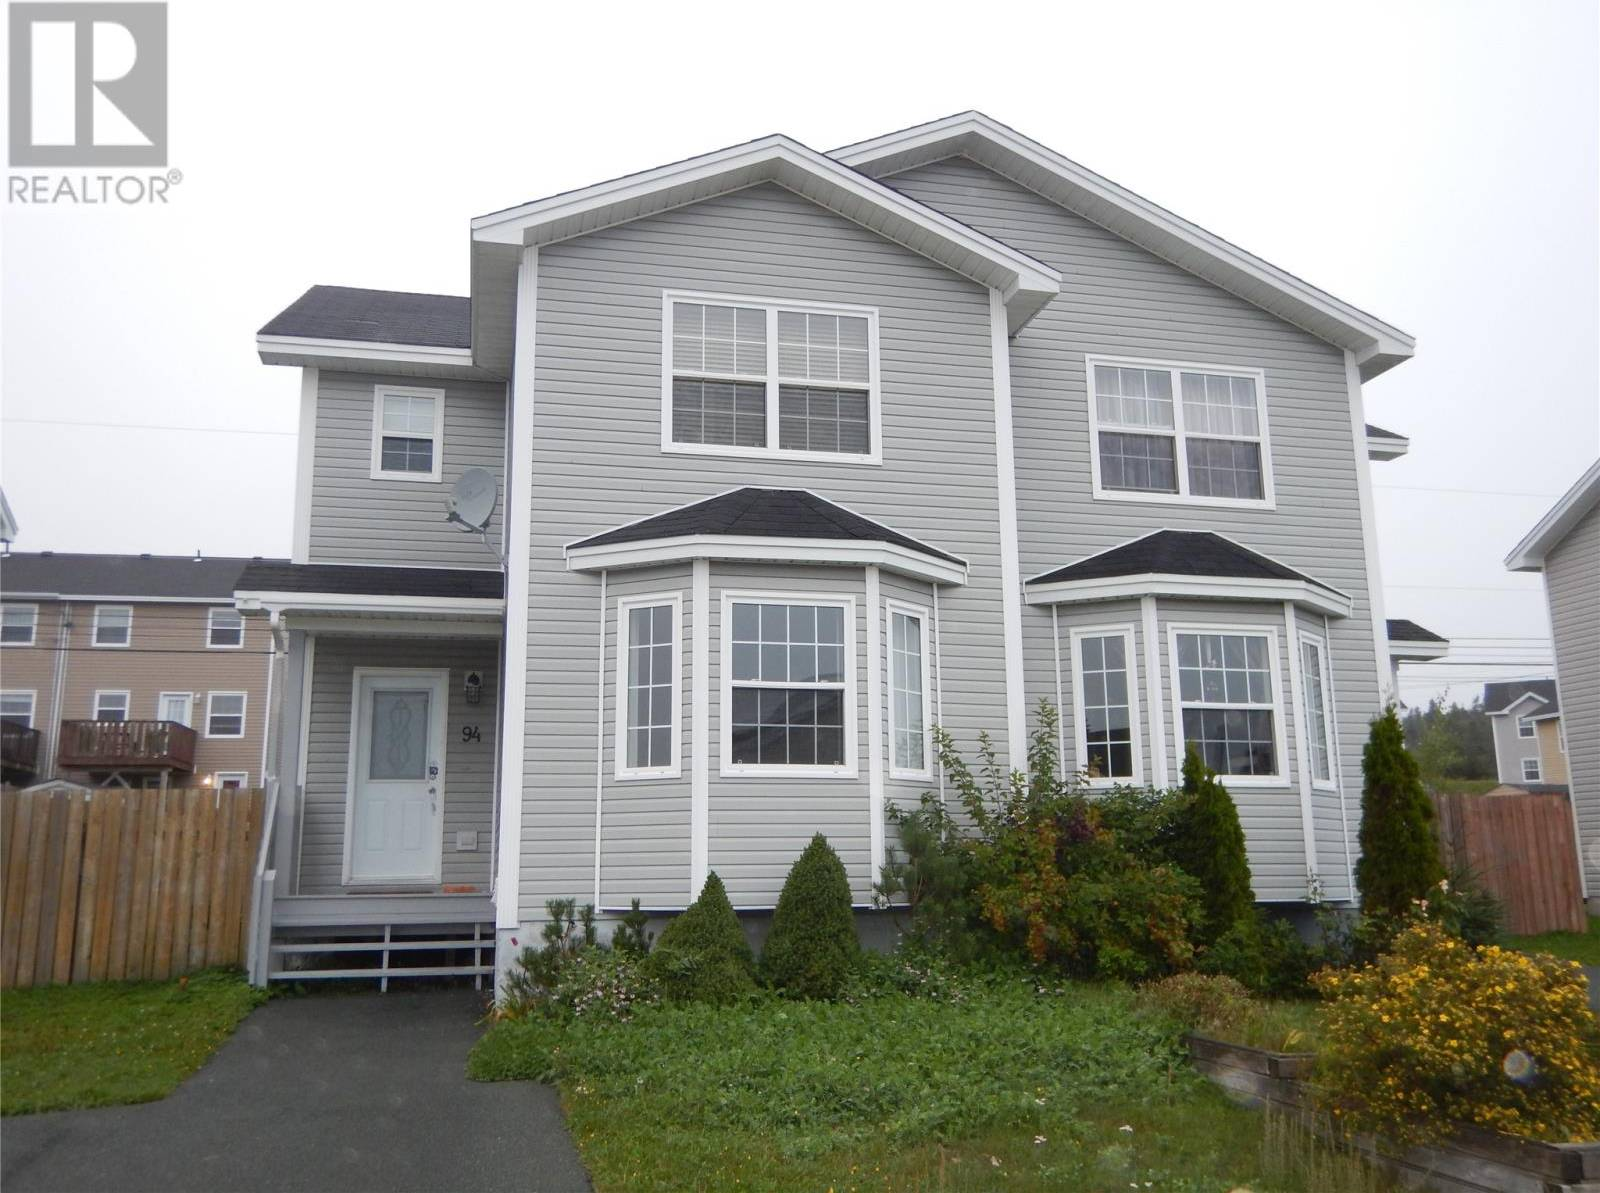 House for sale at 94 Seaborn St St John's Newfoundland - MLS: 1205133